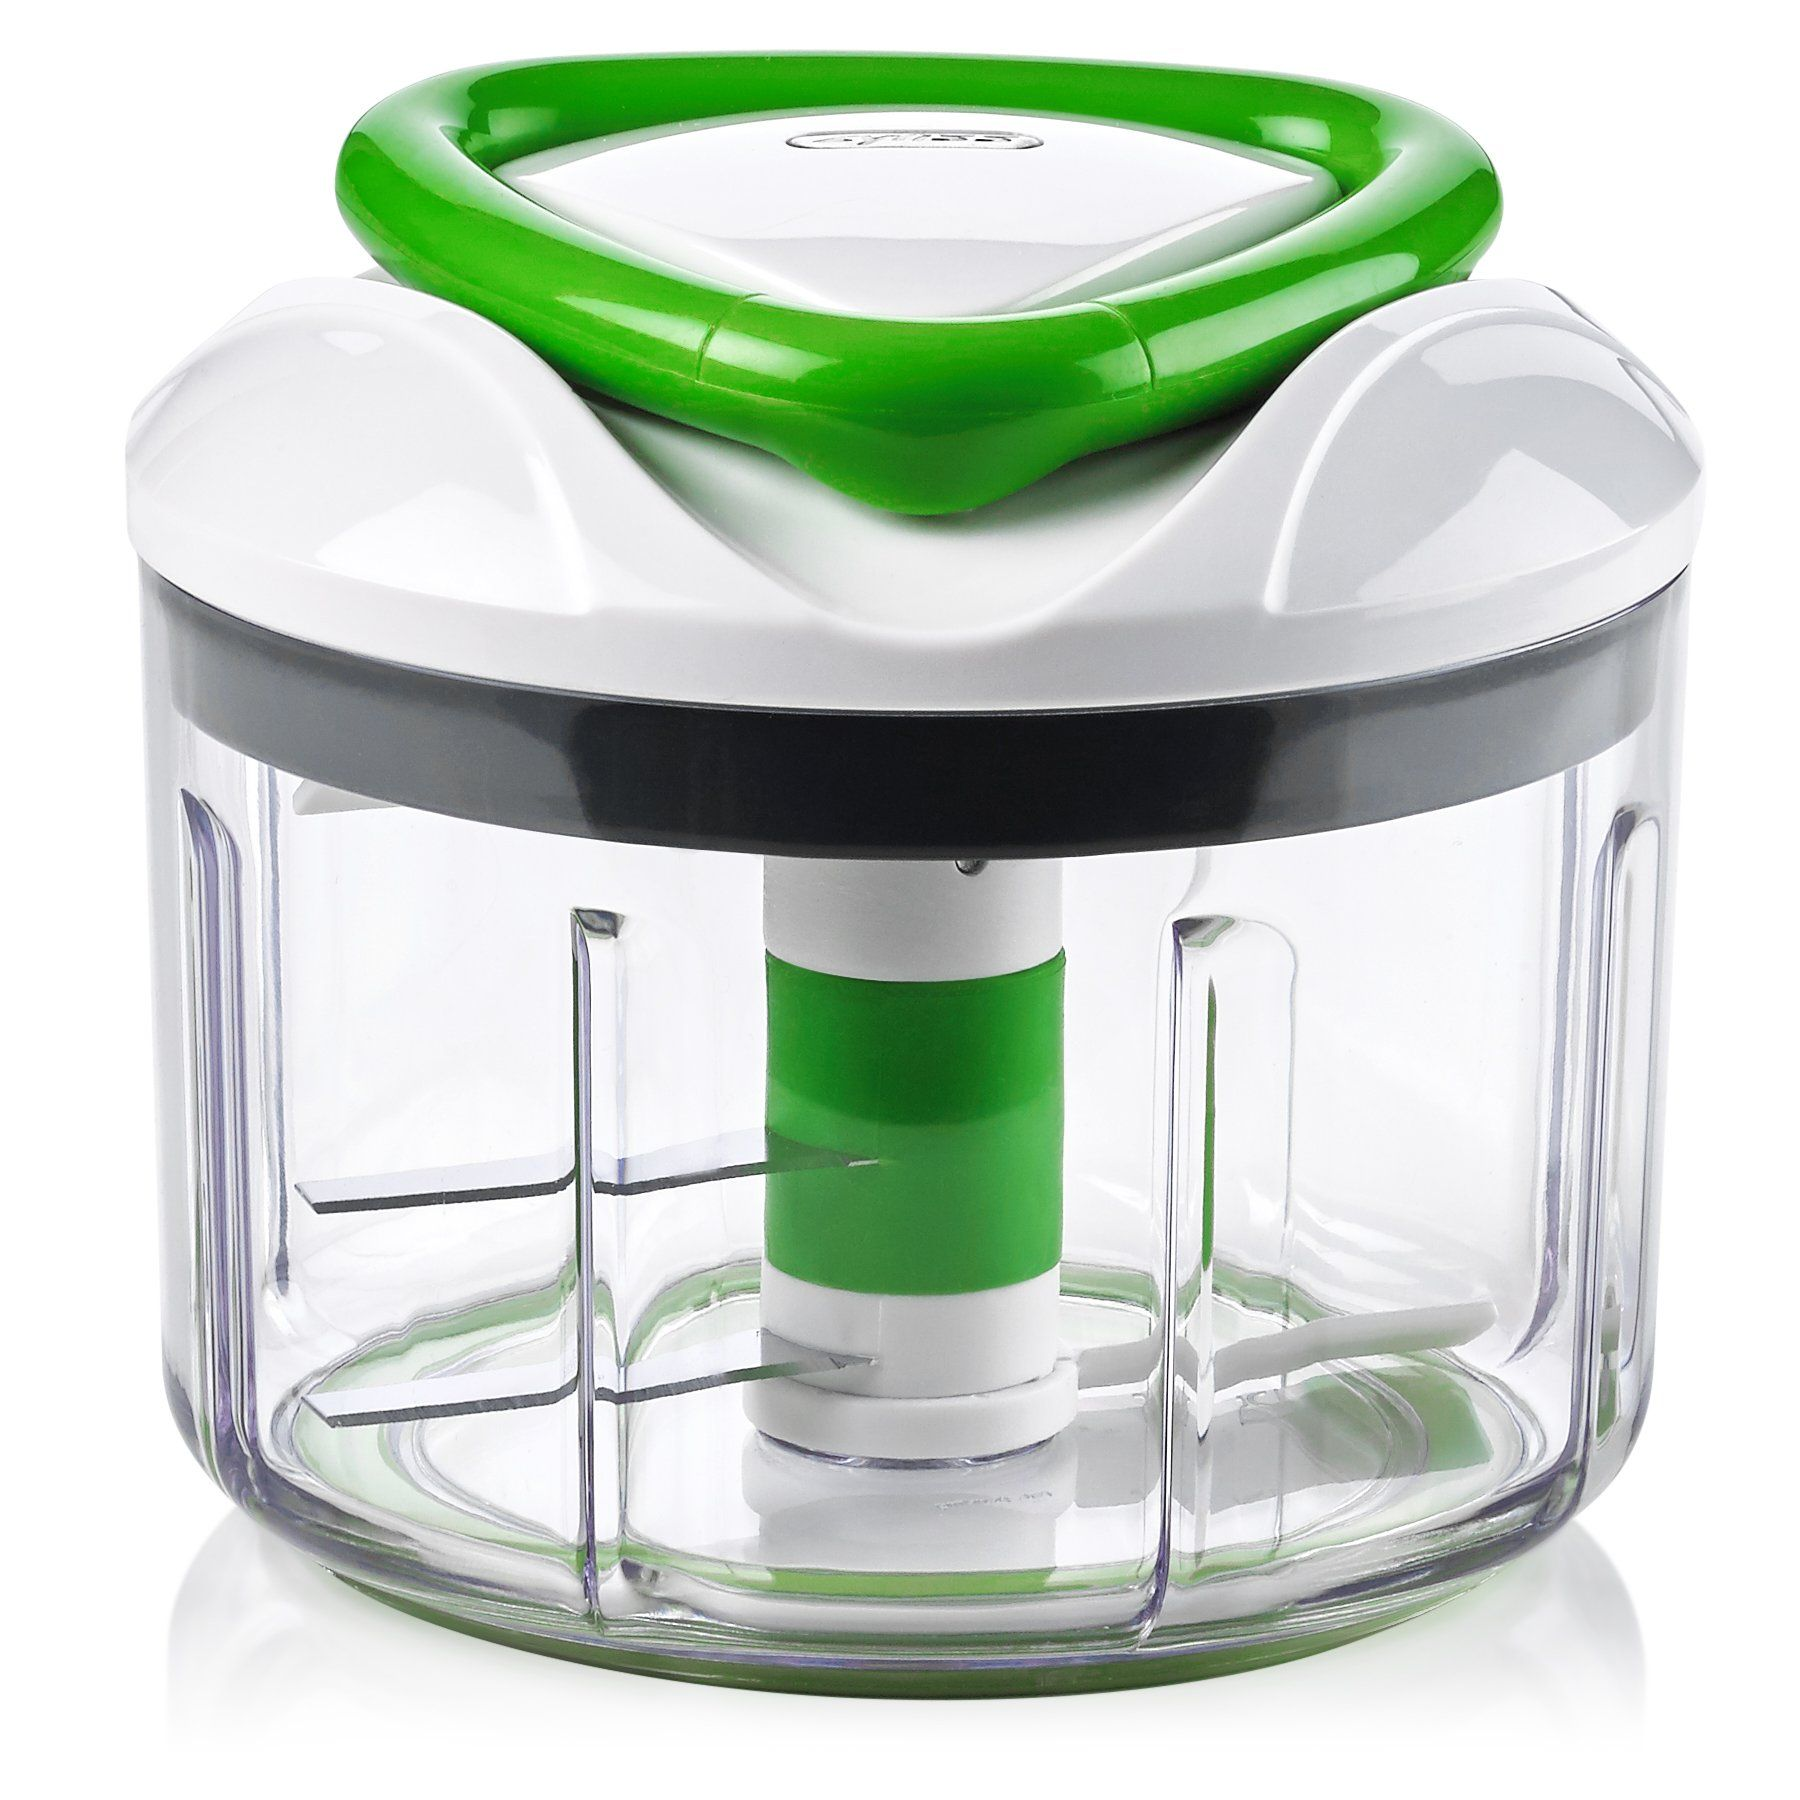 Manual Food Processor And Chopper Easy Pull Vegetable Slicer And